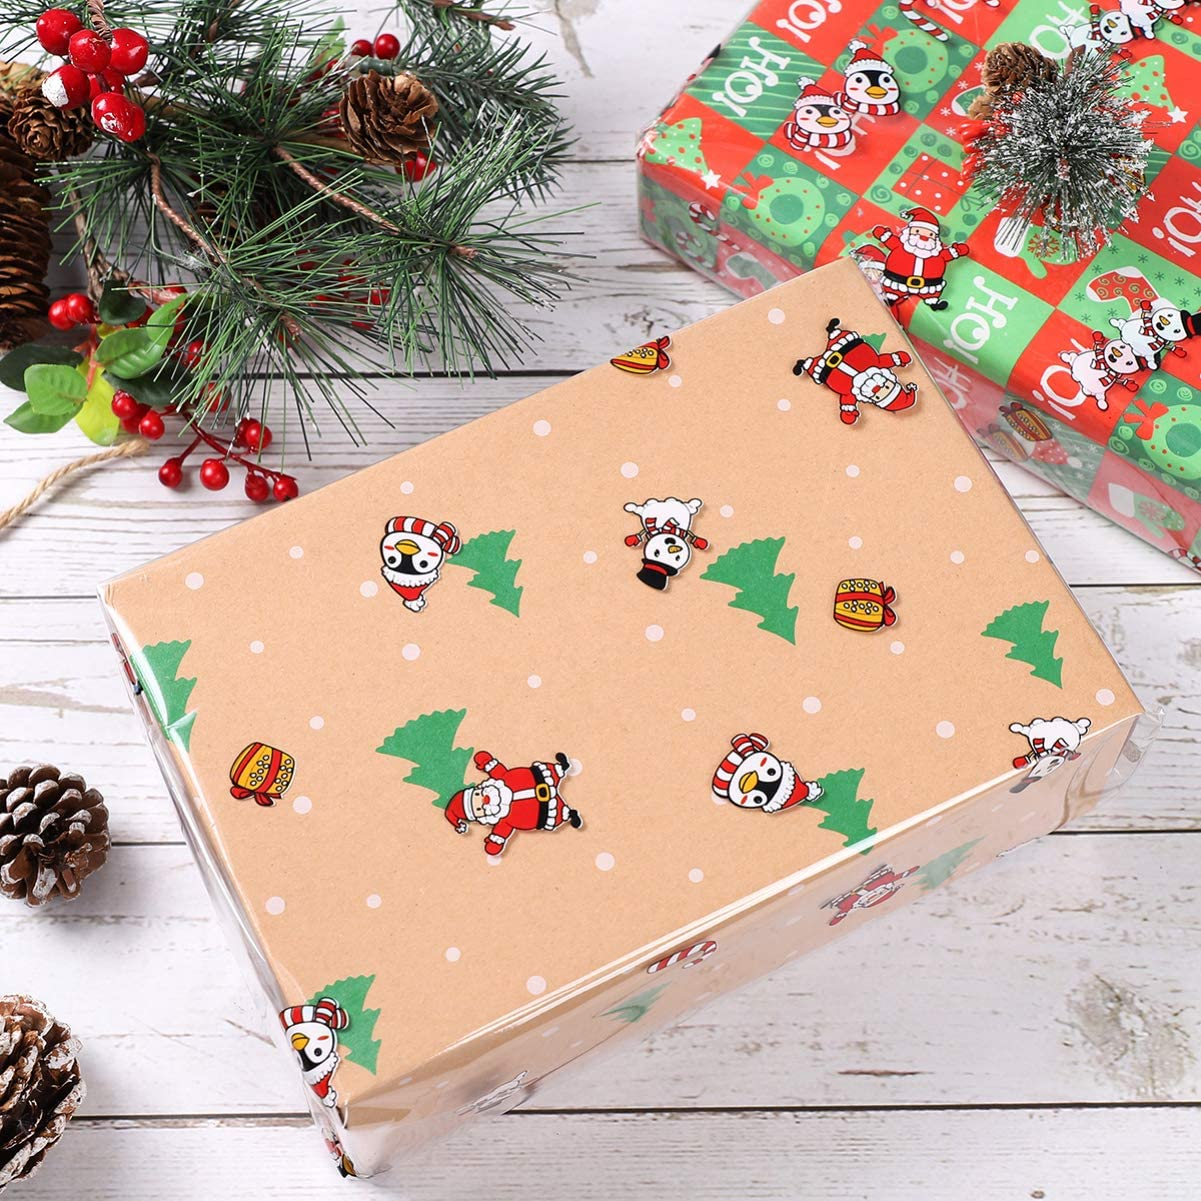 NUOBESTY Christmas Cellophane Wrap Cellophane Gift Wrapper Wrap Roll for Baskets Arts Crafts 3000x80cm 3Mil Thickness Santa Claus Pattern Design